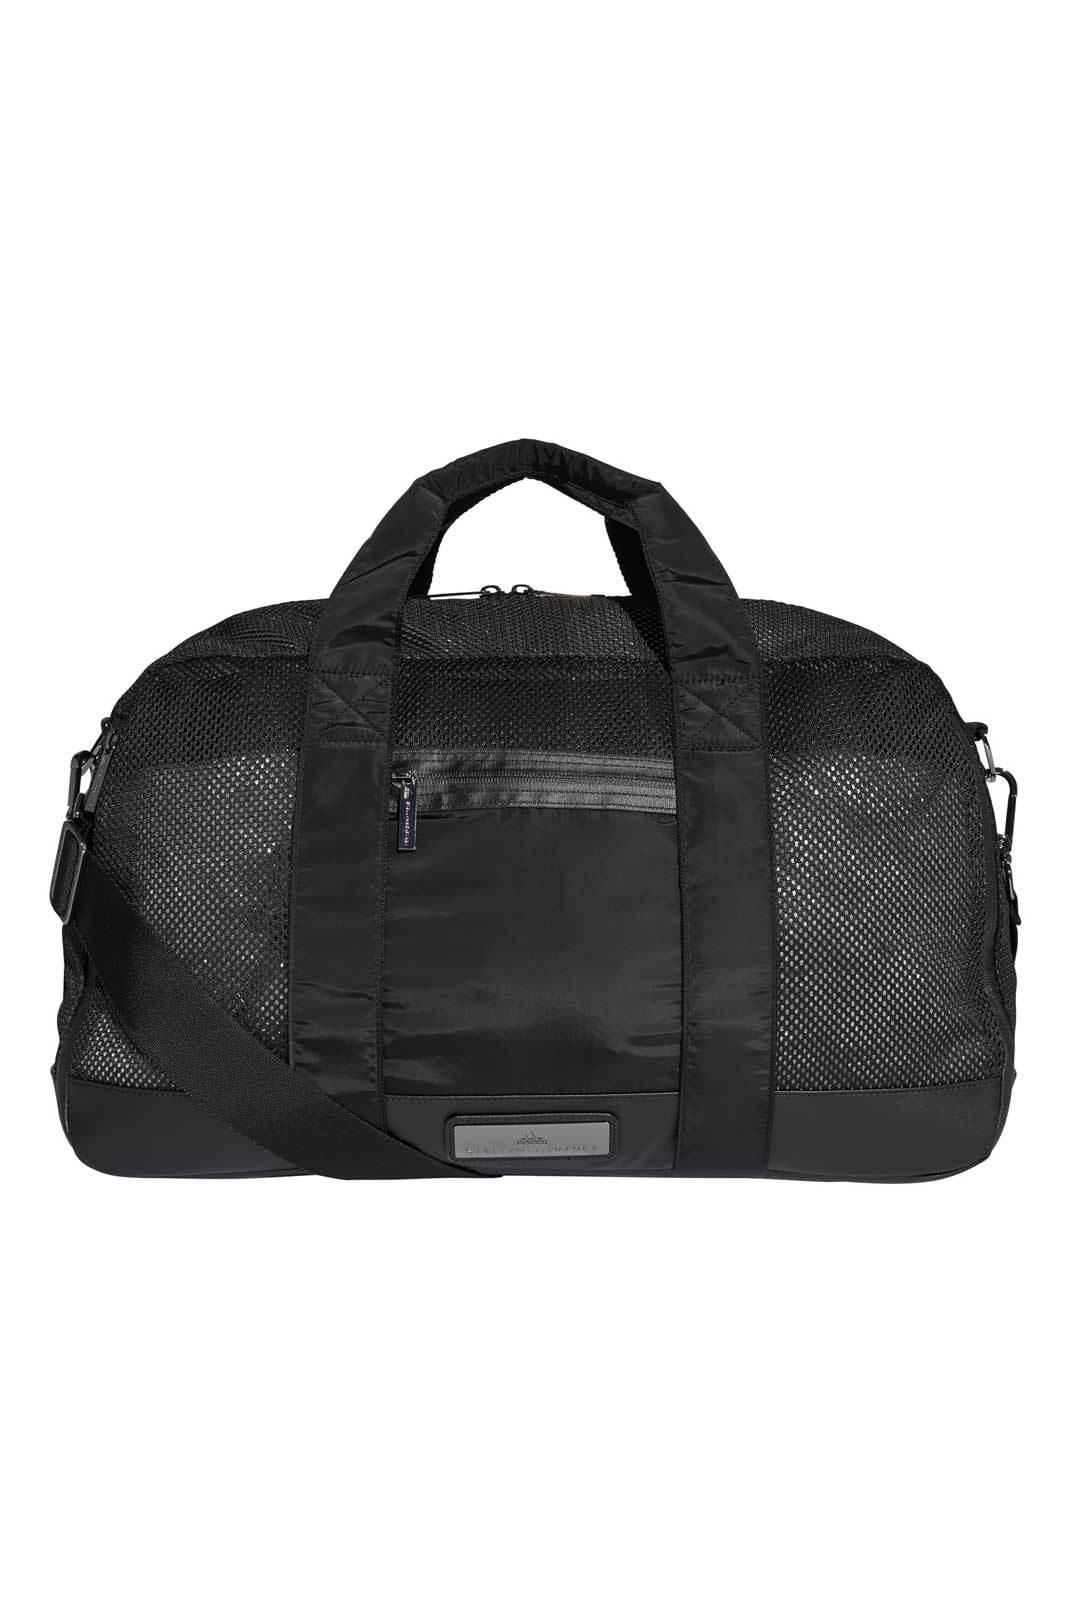 Lyst - Adidas By Stella Mccartney Yoga Bag in Black for Men f46aeeb3700f2